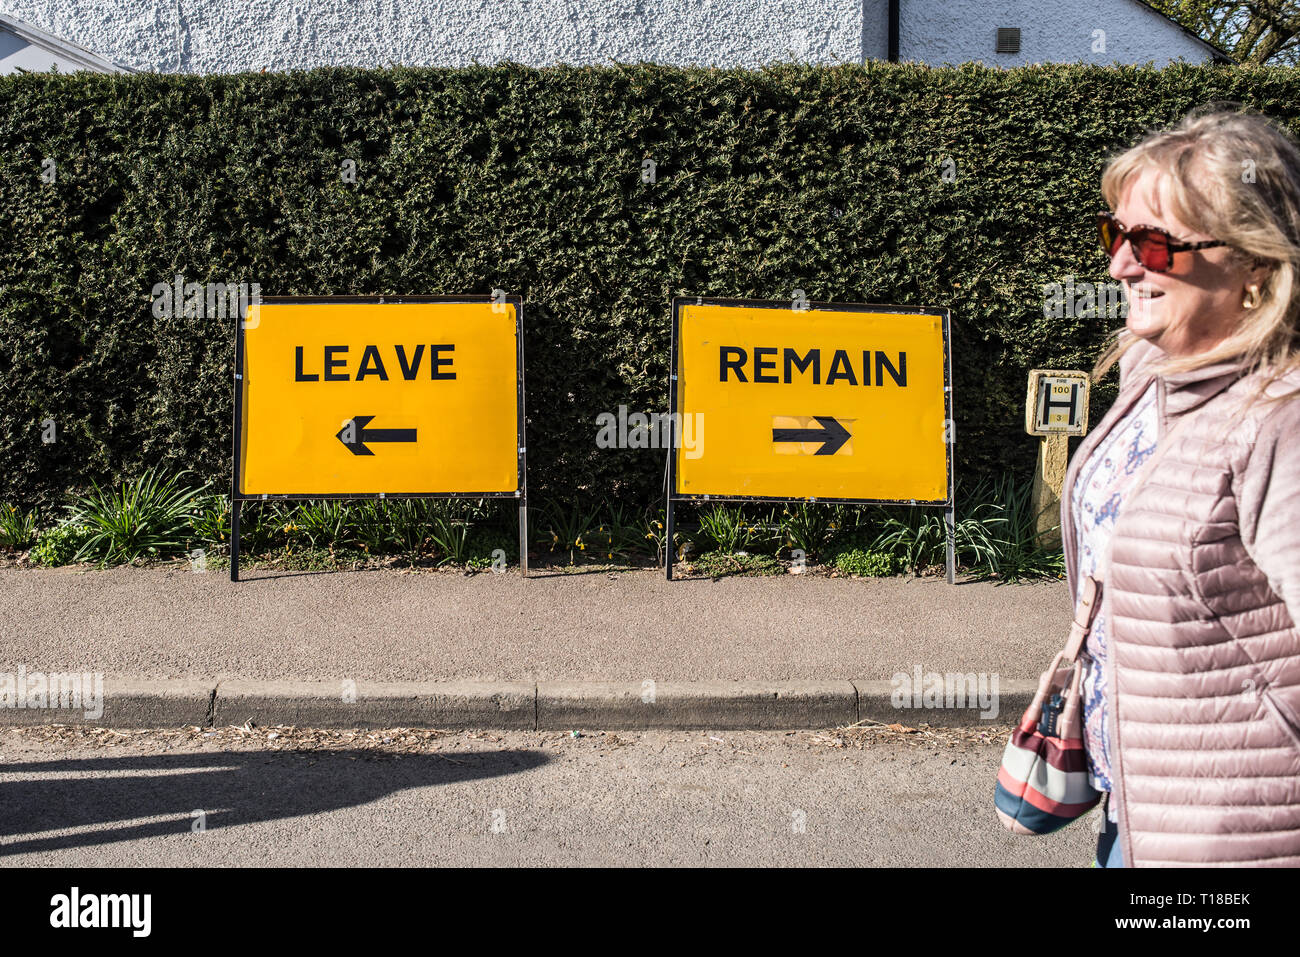 Funny Jokes About Brexit Two Satiric Comic Road Signs With The